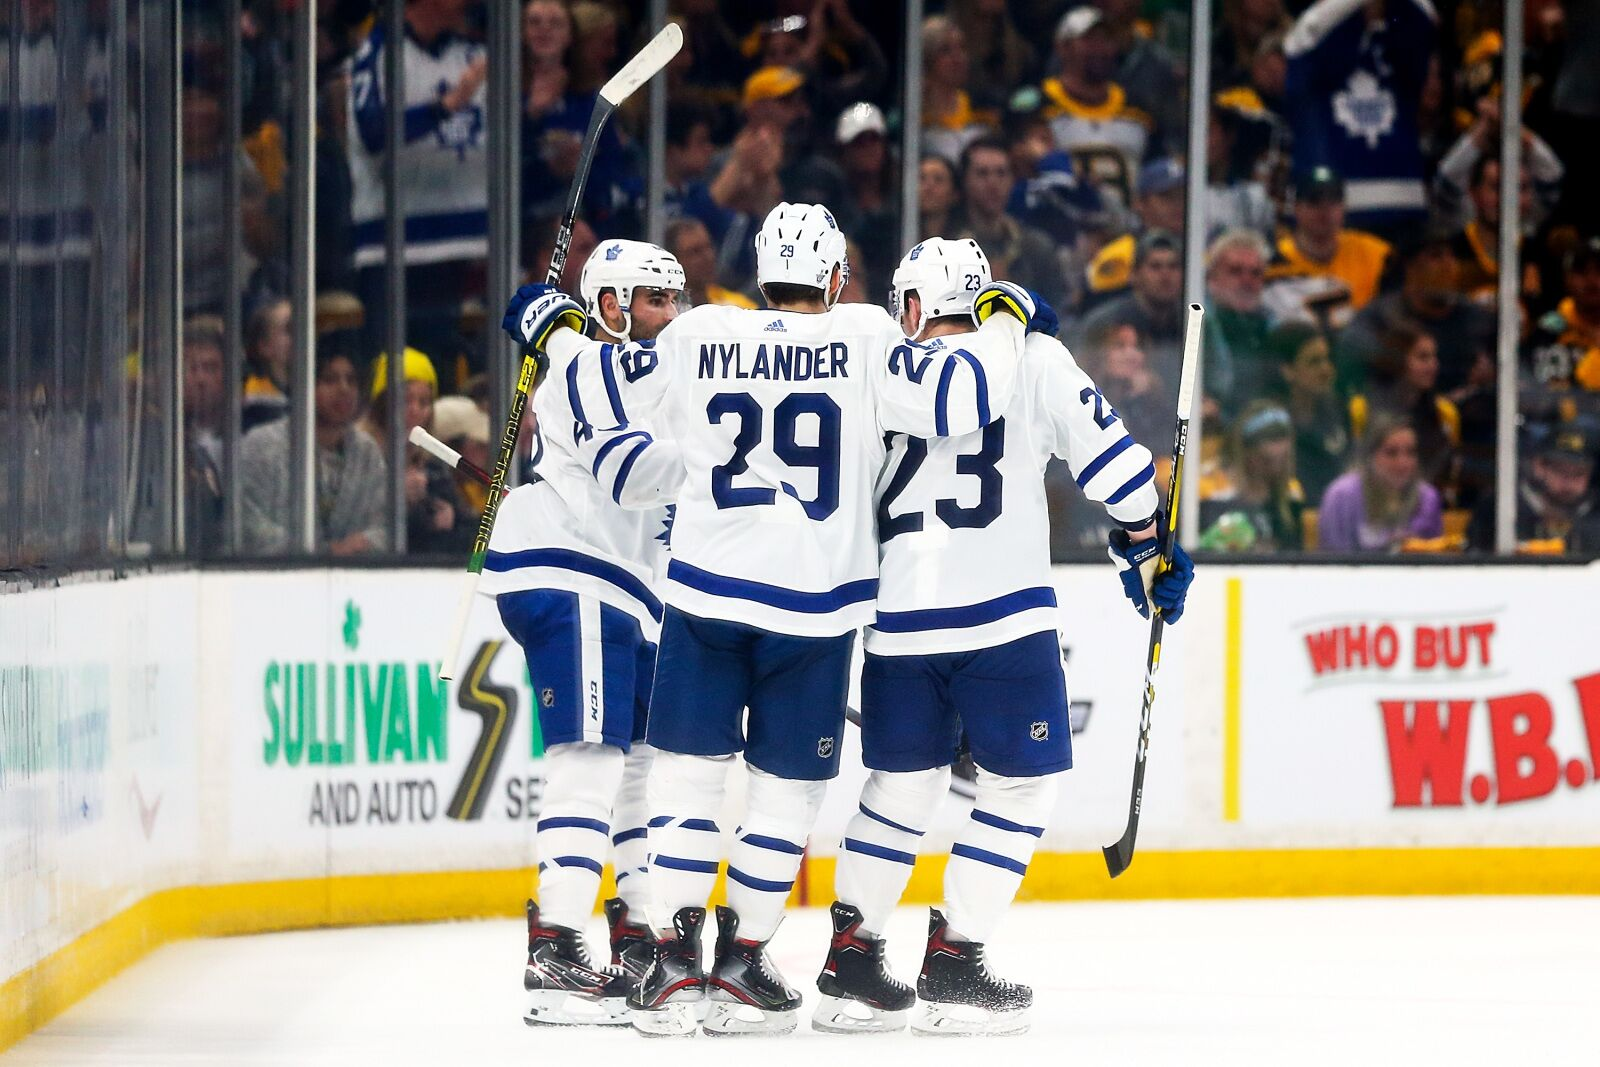 Toronto Maple Leafs: A New Look Leafs/Bruins Series